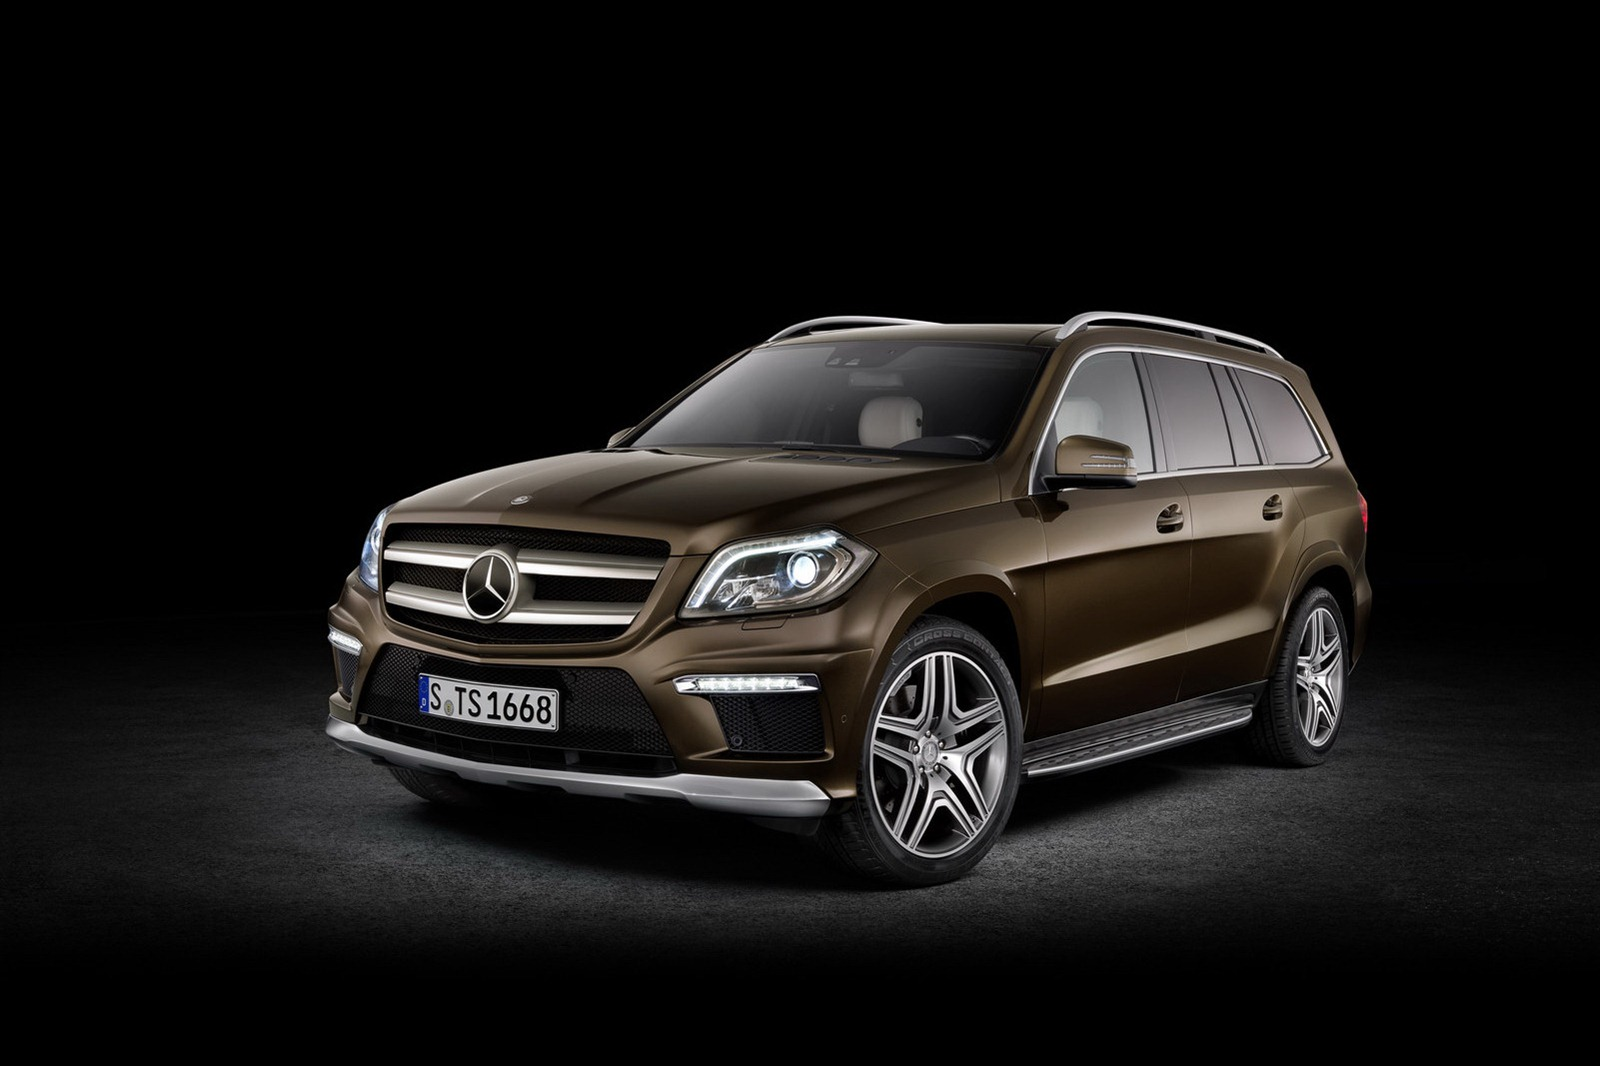 2013 mercedes benz gl class luxury suv unveiled autoevolution. Black Bedroom Furniture Sets. Home Design Ideas